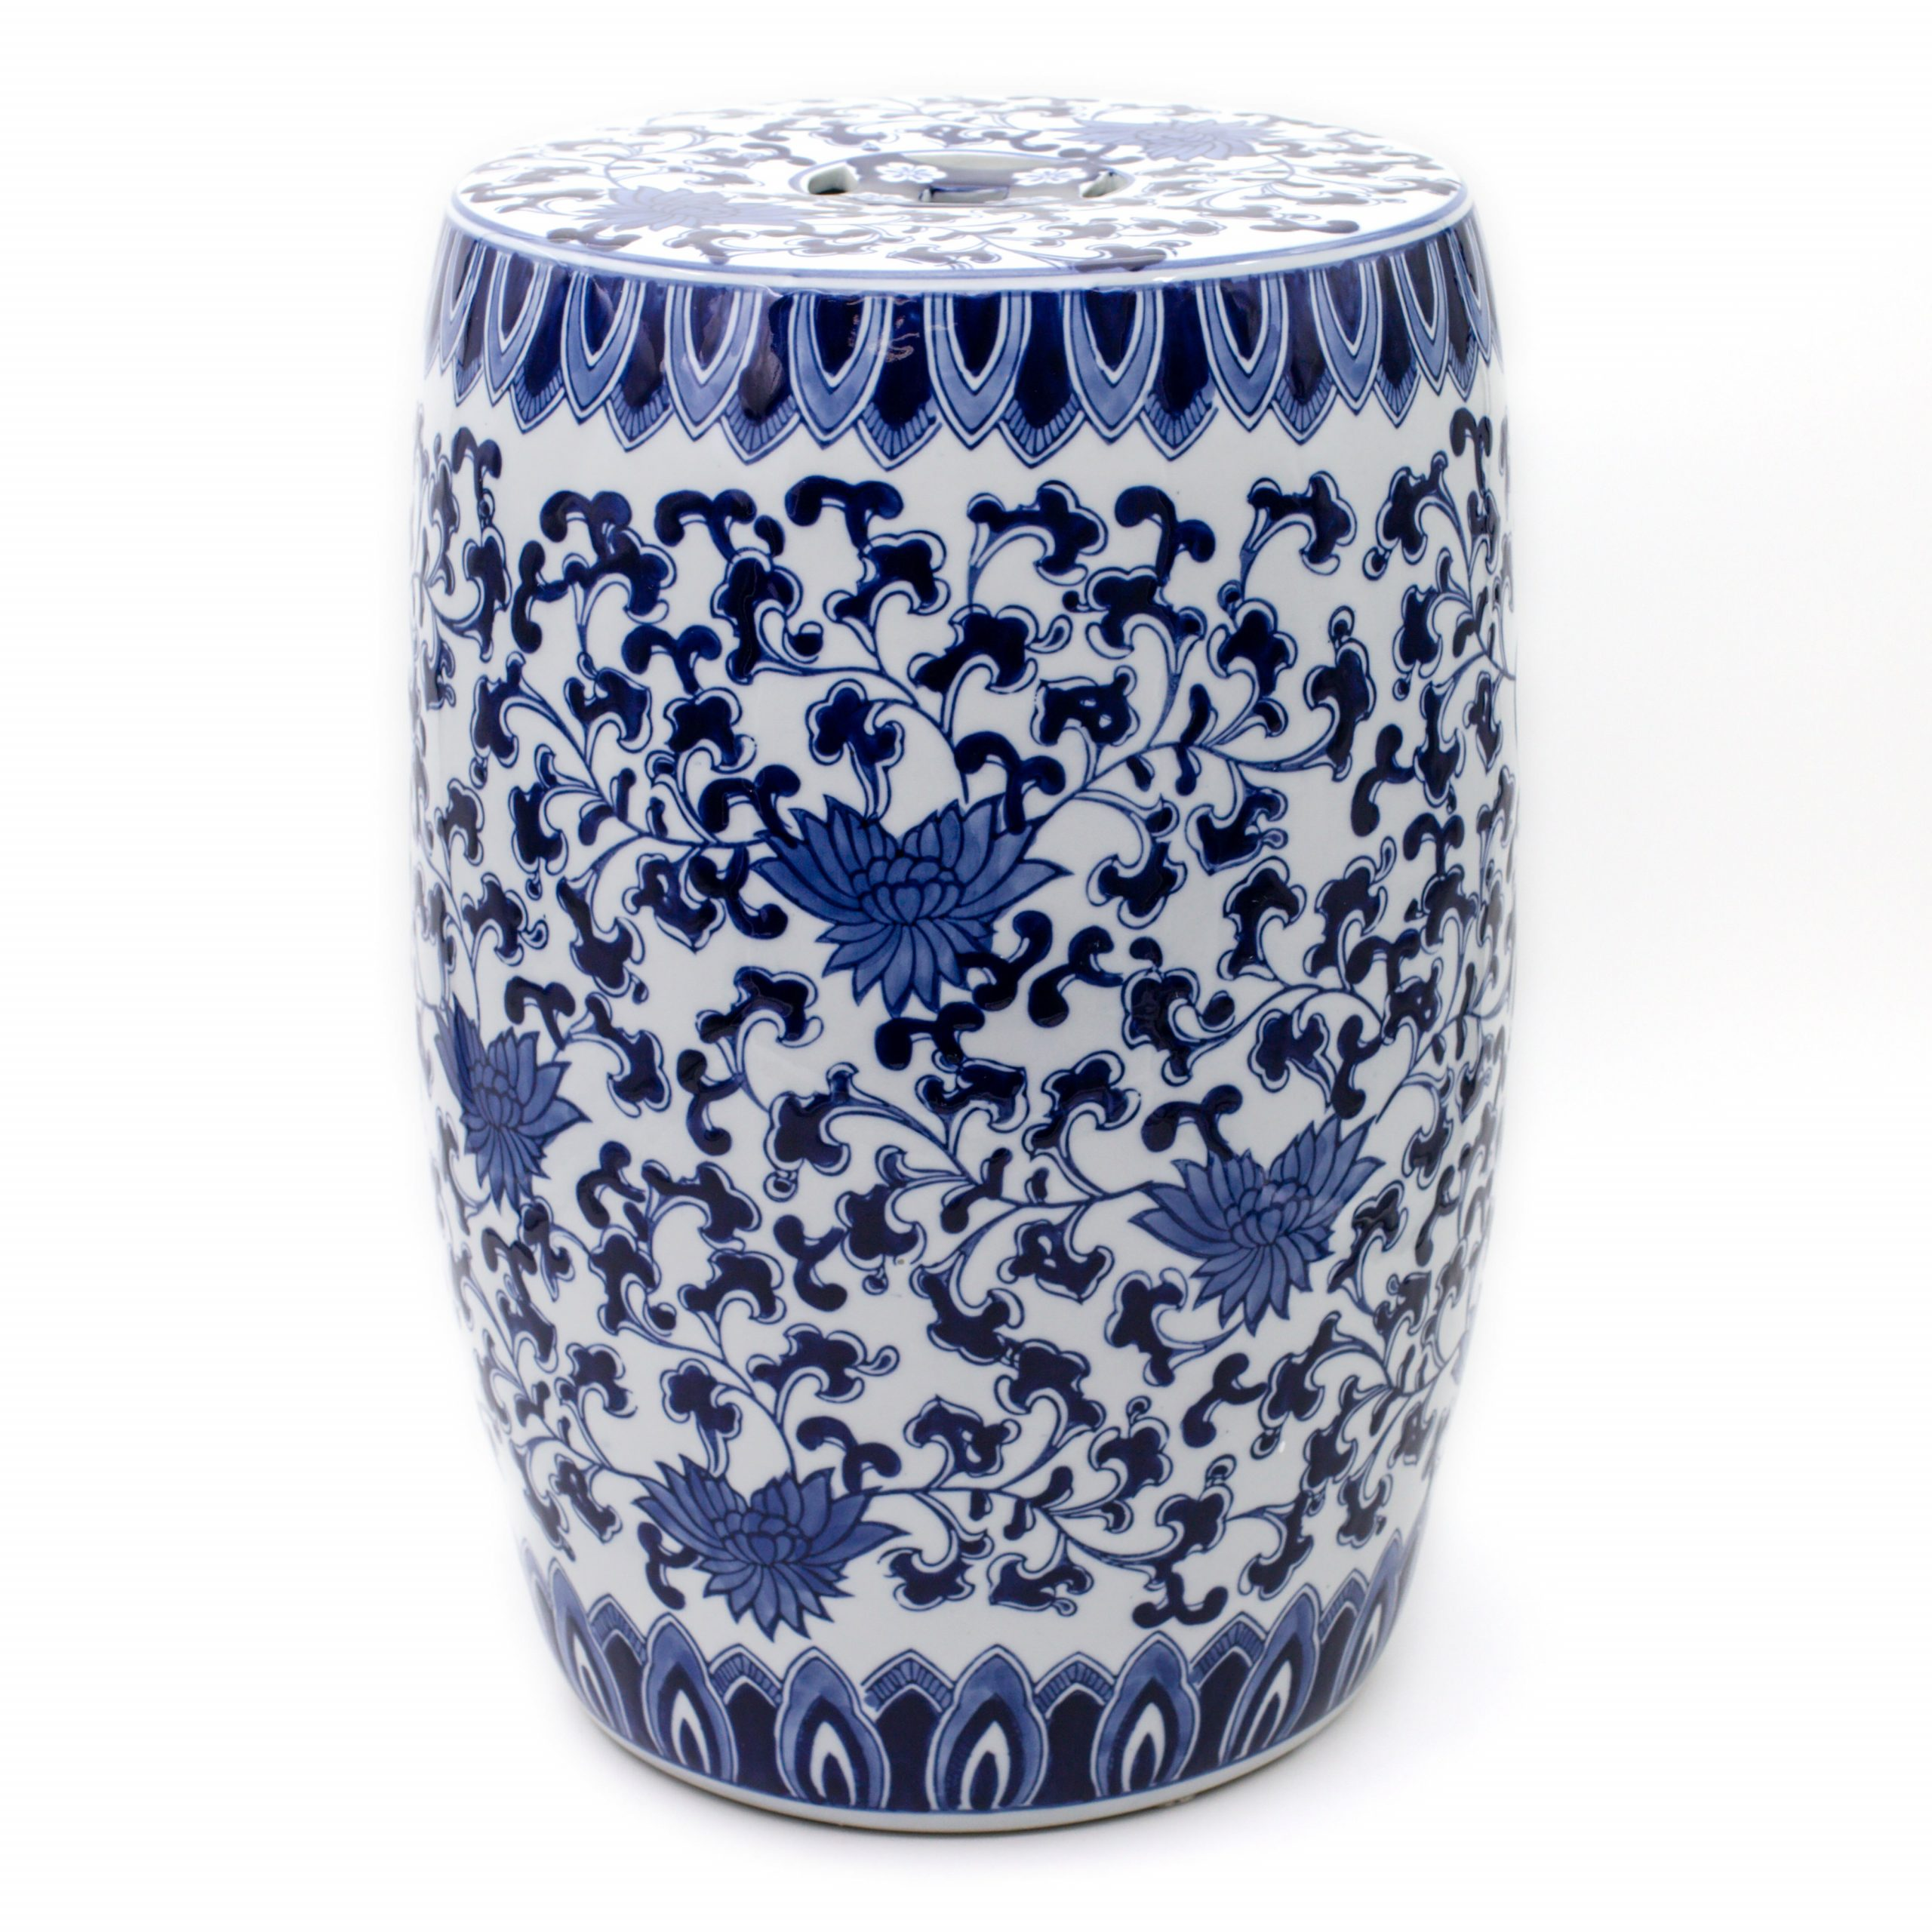 Well Known Ceramic Garden Stool With Wilde Poppies Ceramic Garden Stools (View 13 of 30)